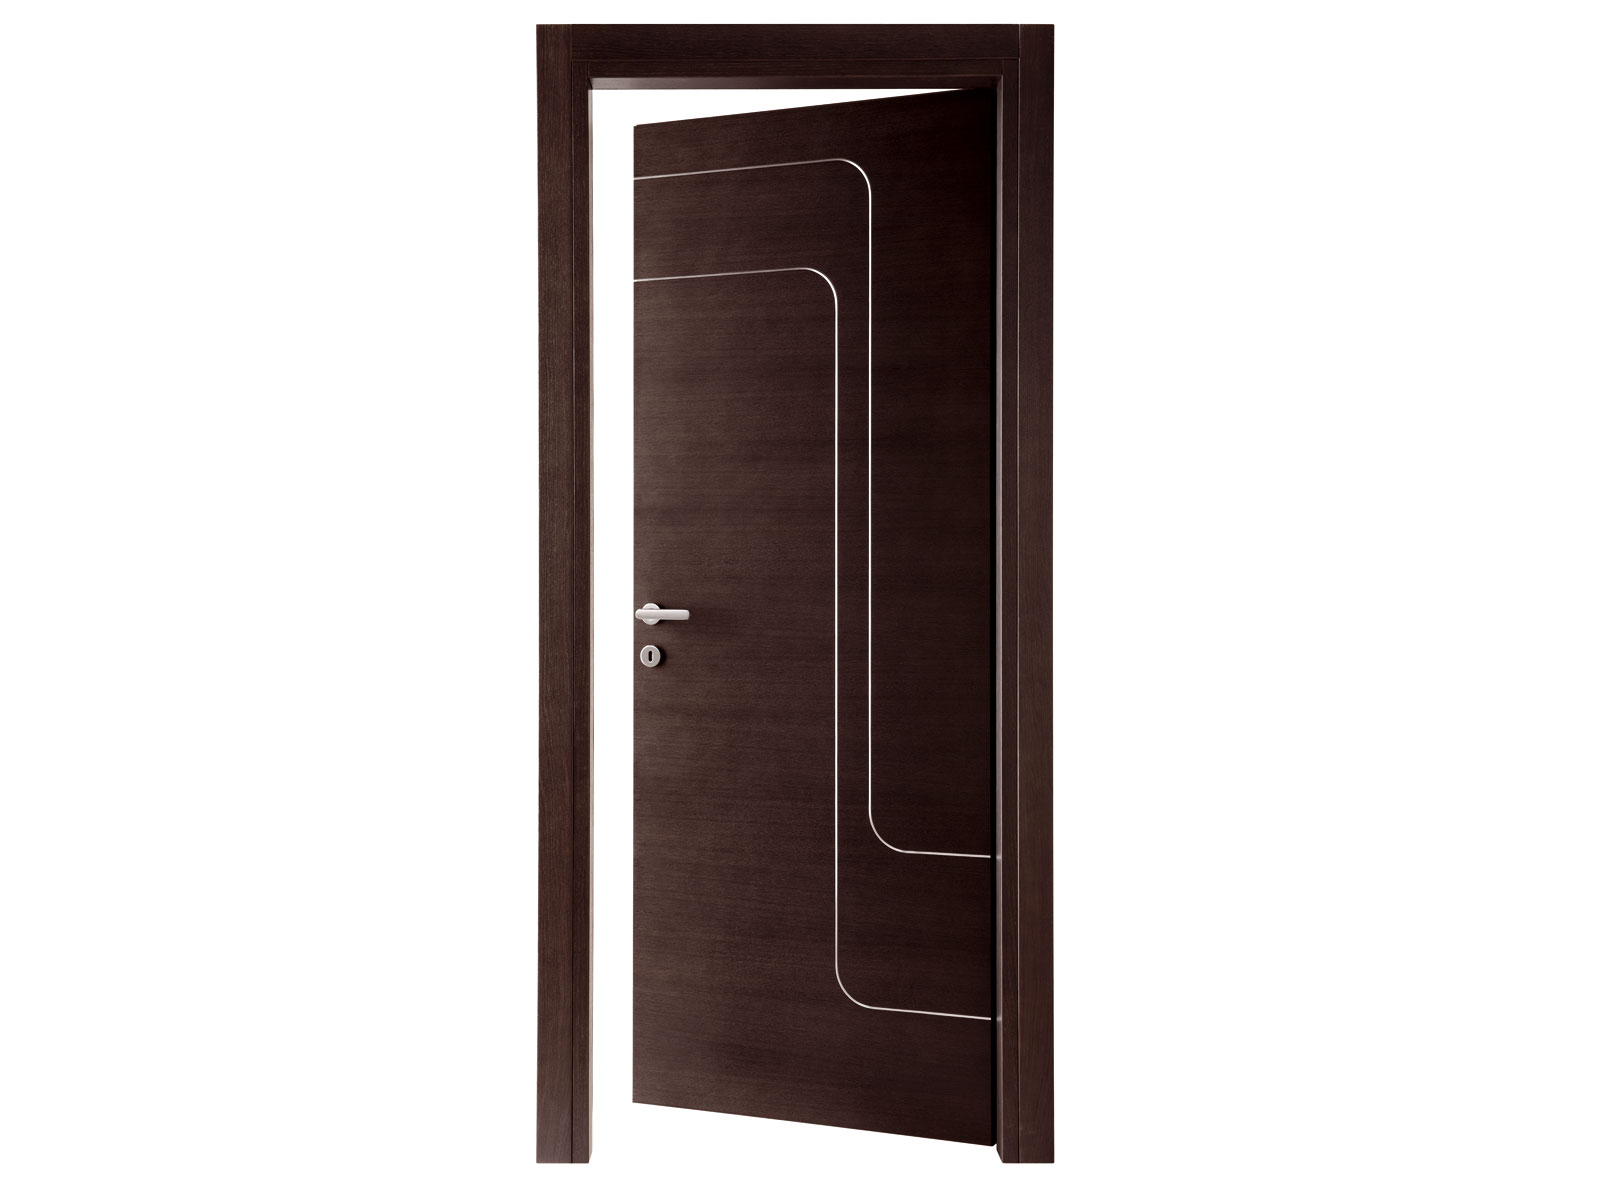 Hinged wooden door jet by ghizzi benatti design perusko for Door design catalog